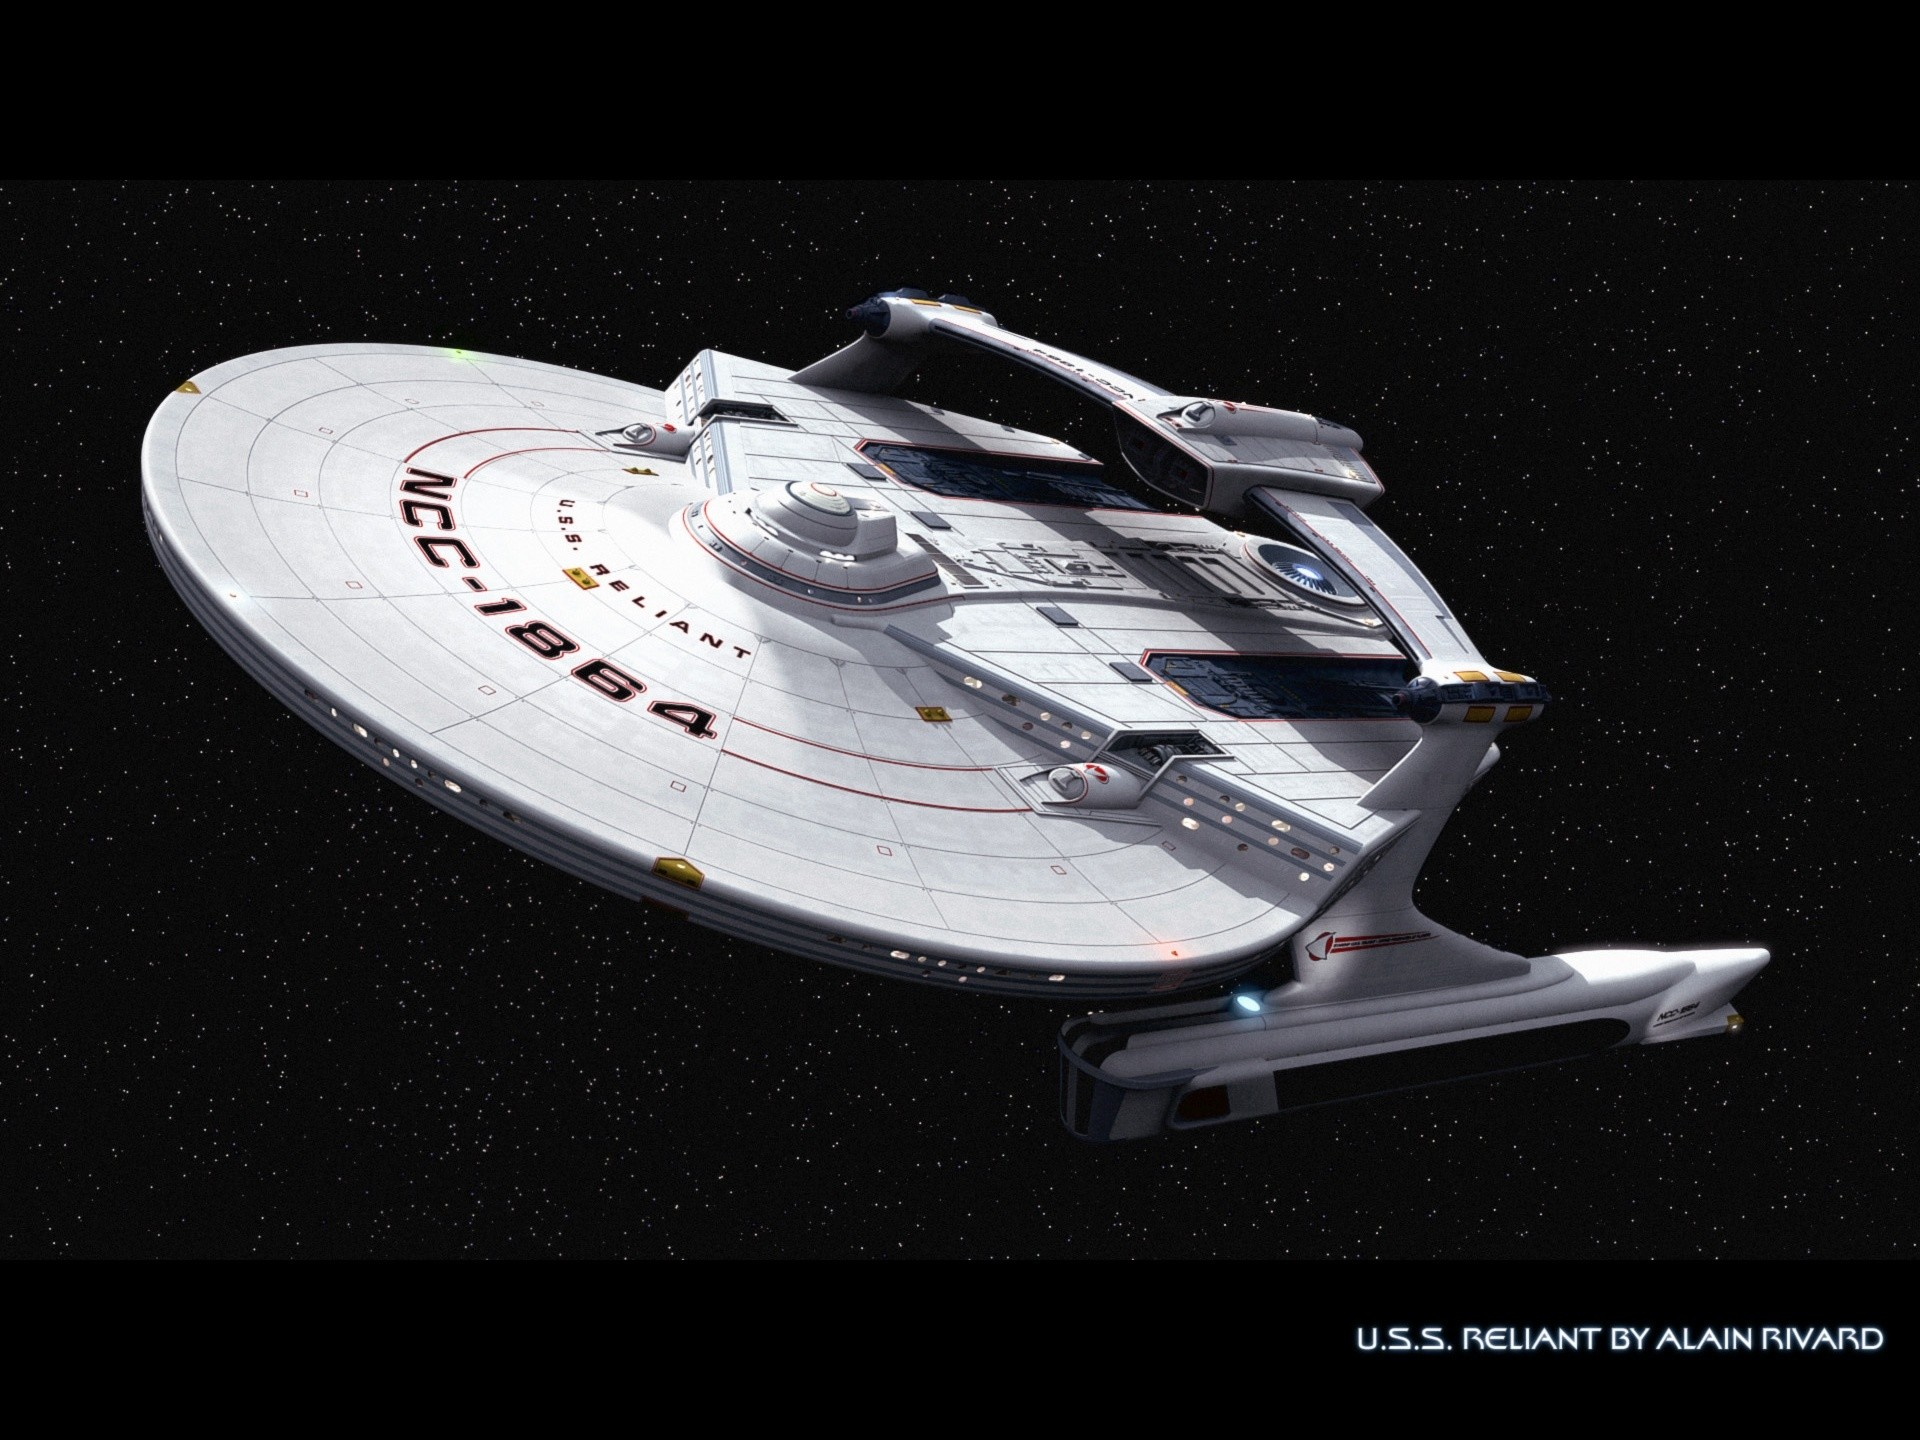 Star Trek U.S.S. Reliant, awesome wallpaper. Here is the source link.